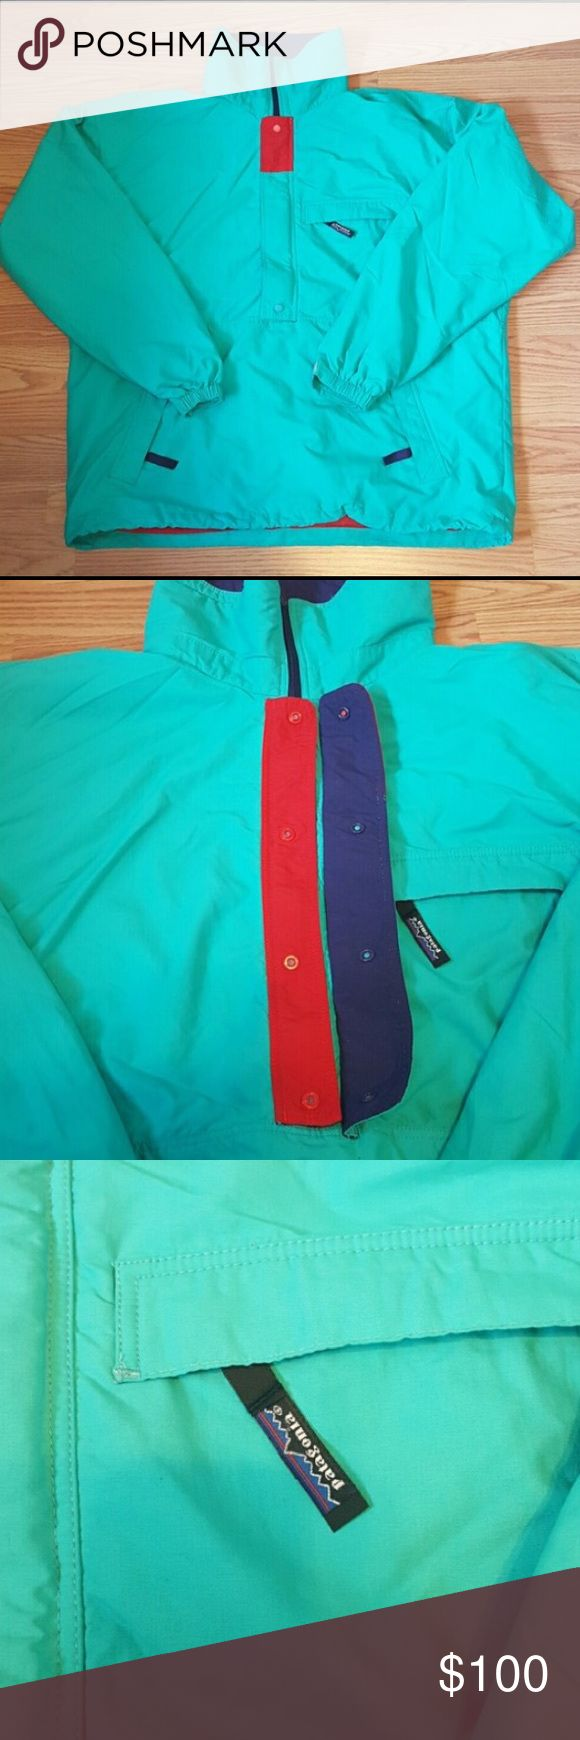 Vintage Patagonia Rain/Ski Jacket, Size L Vibrant Teal Patagonia Ski/Rain Jacket, Size L. In like-new condition. Would love to keep it, but it is just a little bit too big. Patagonia Jackets & Coats